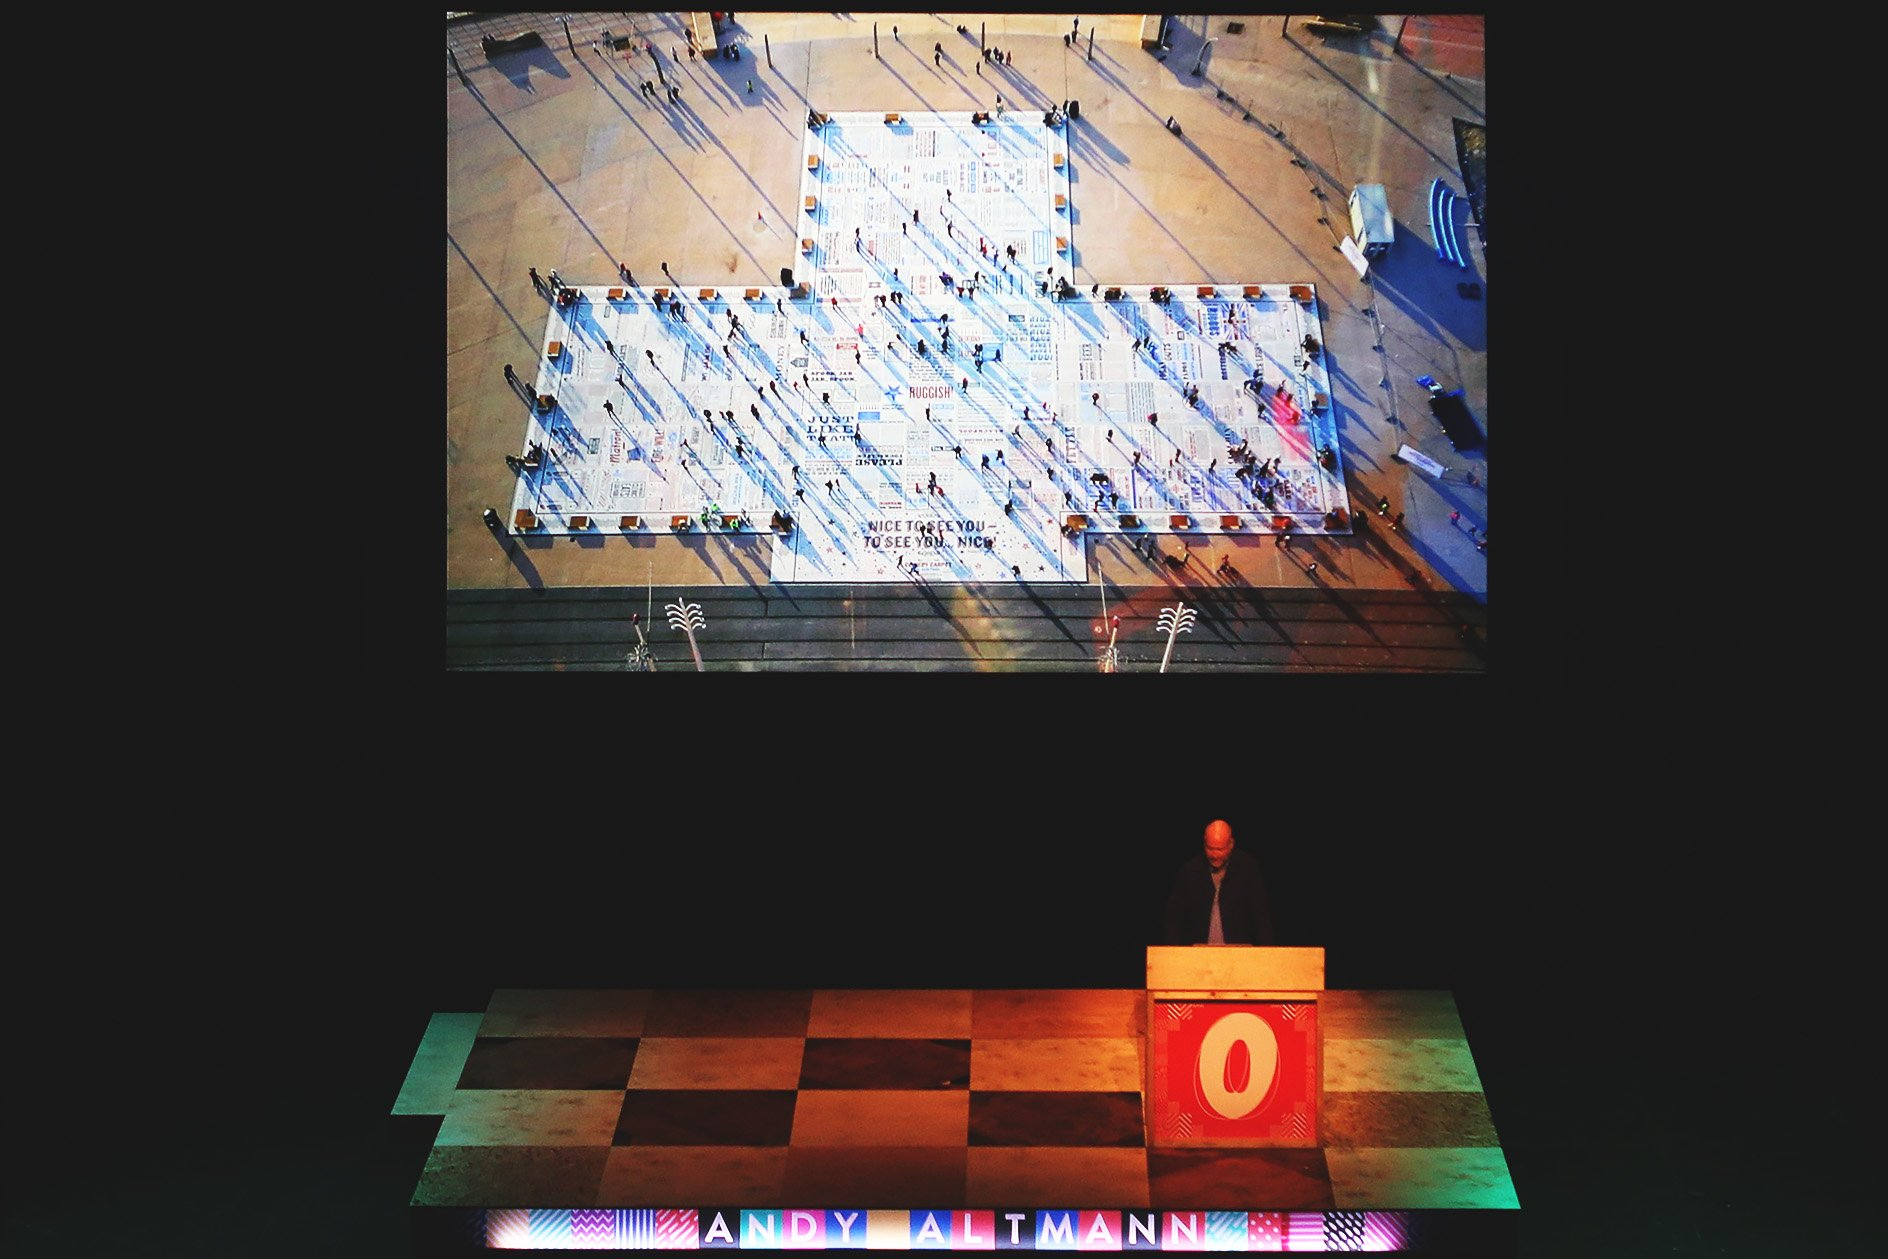 Andy Altmann at OFFSET 2015 – comedy carpet aerial